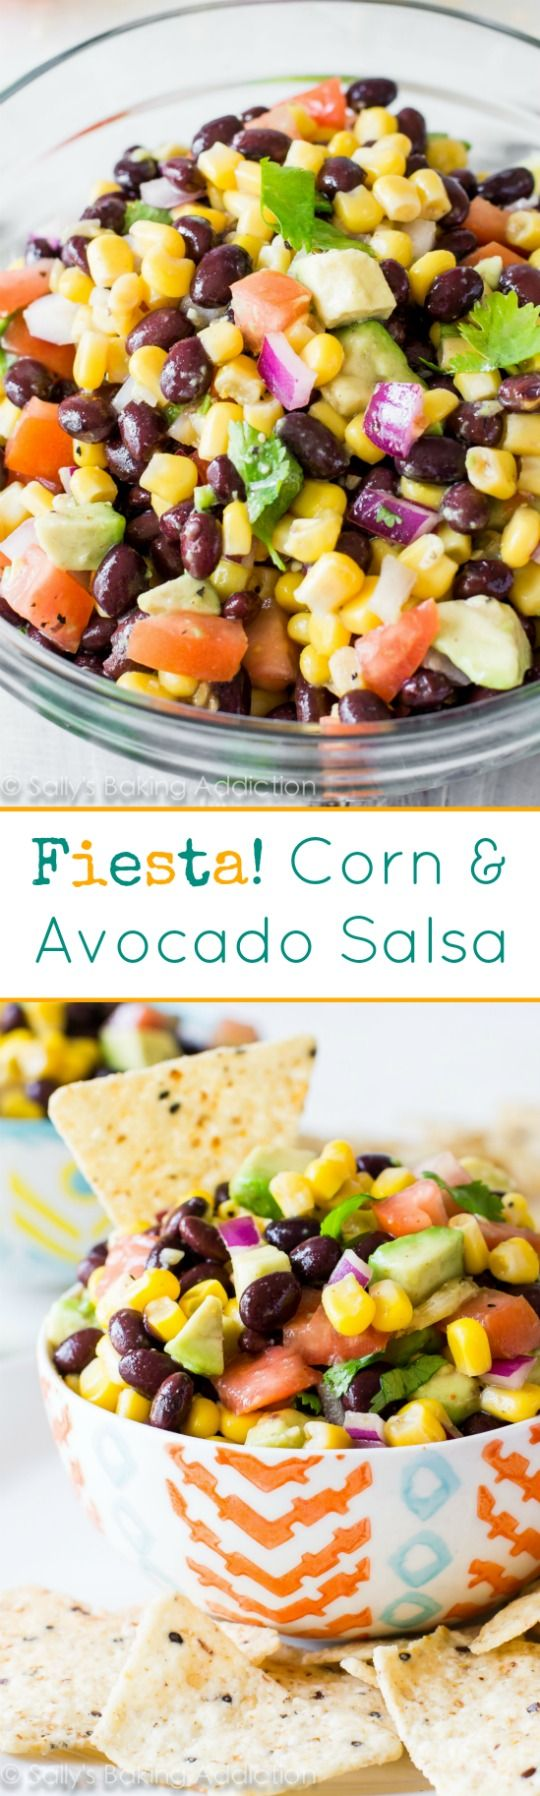 This is my favorite salsa-- it's loaded with texture, flavor, and chunks of your favorites like corn, beans, and avocado!